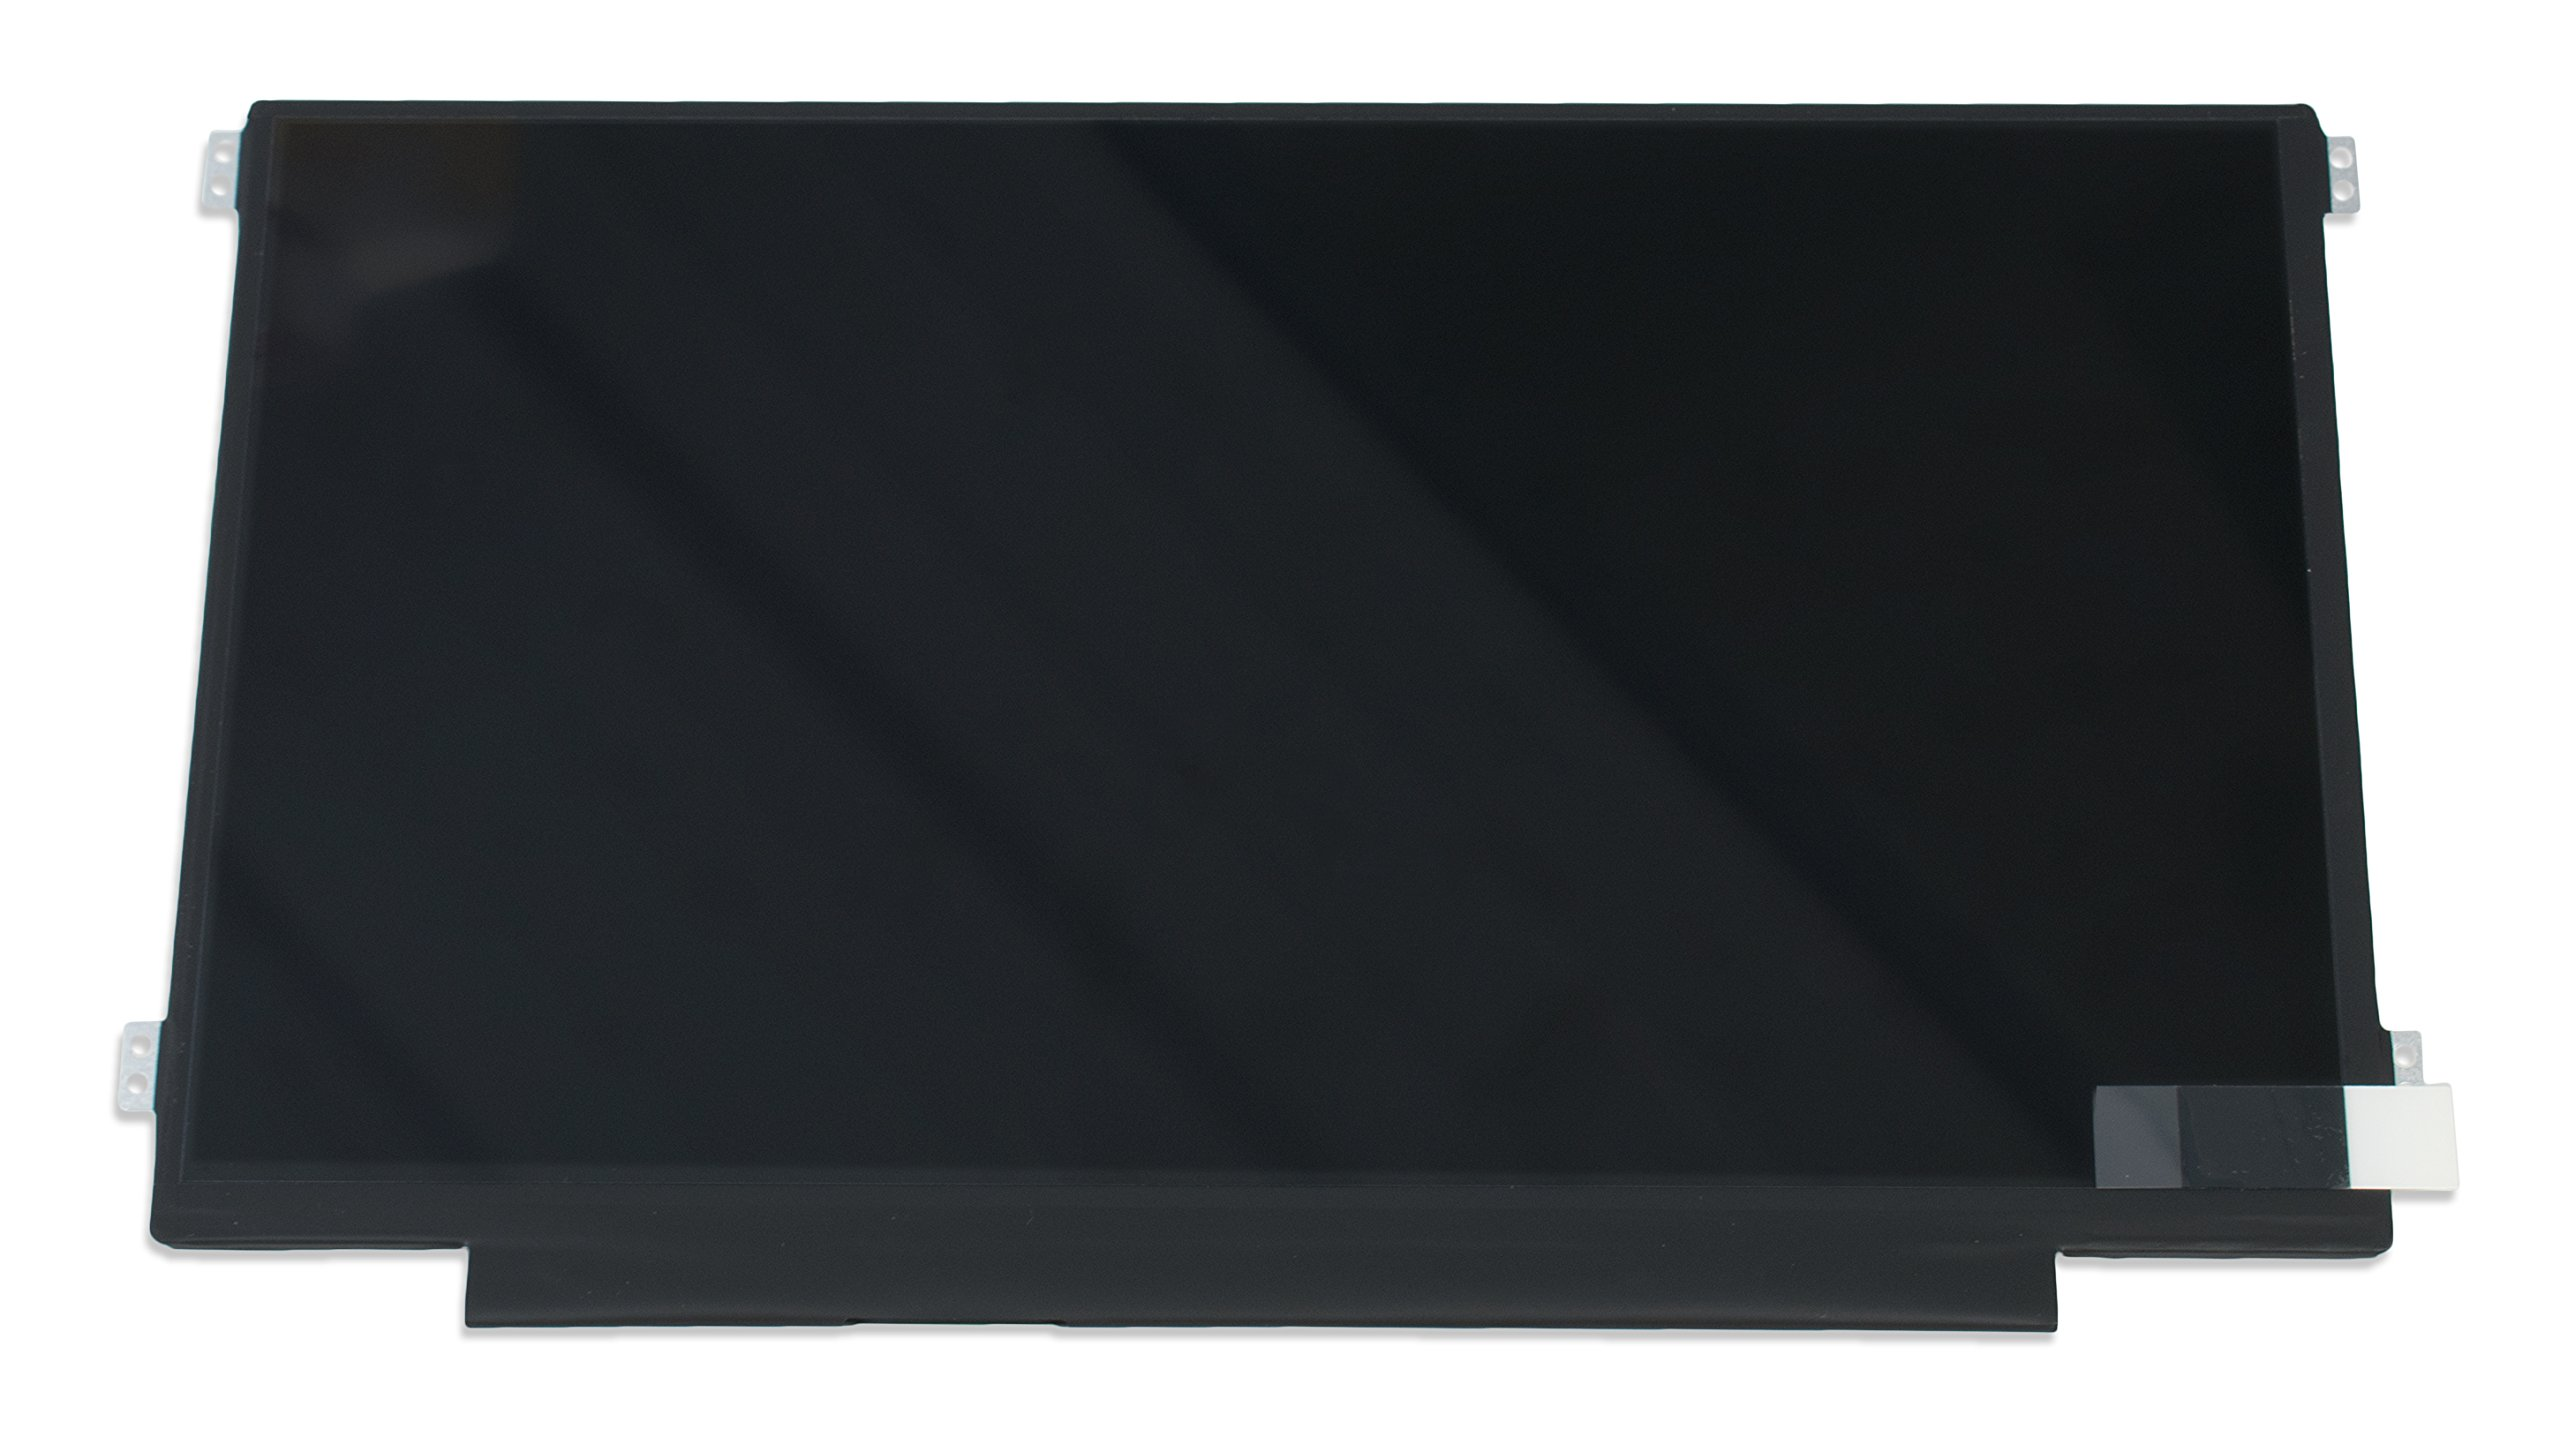 11.5'' WXGA HD 1366 x 768 LED LCD Replacement Screen for Acer C720 Chromebook (TN) by Innolux